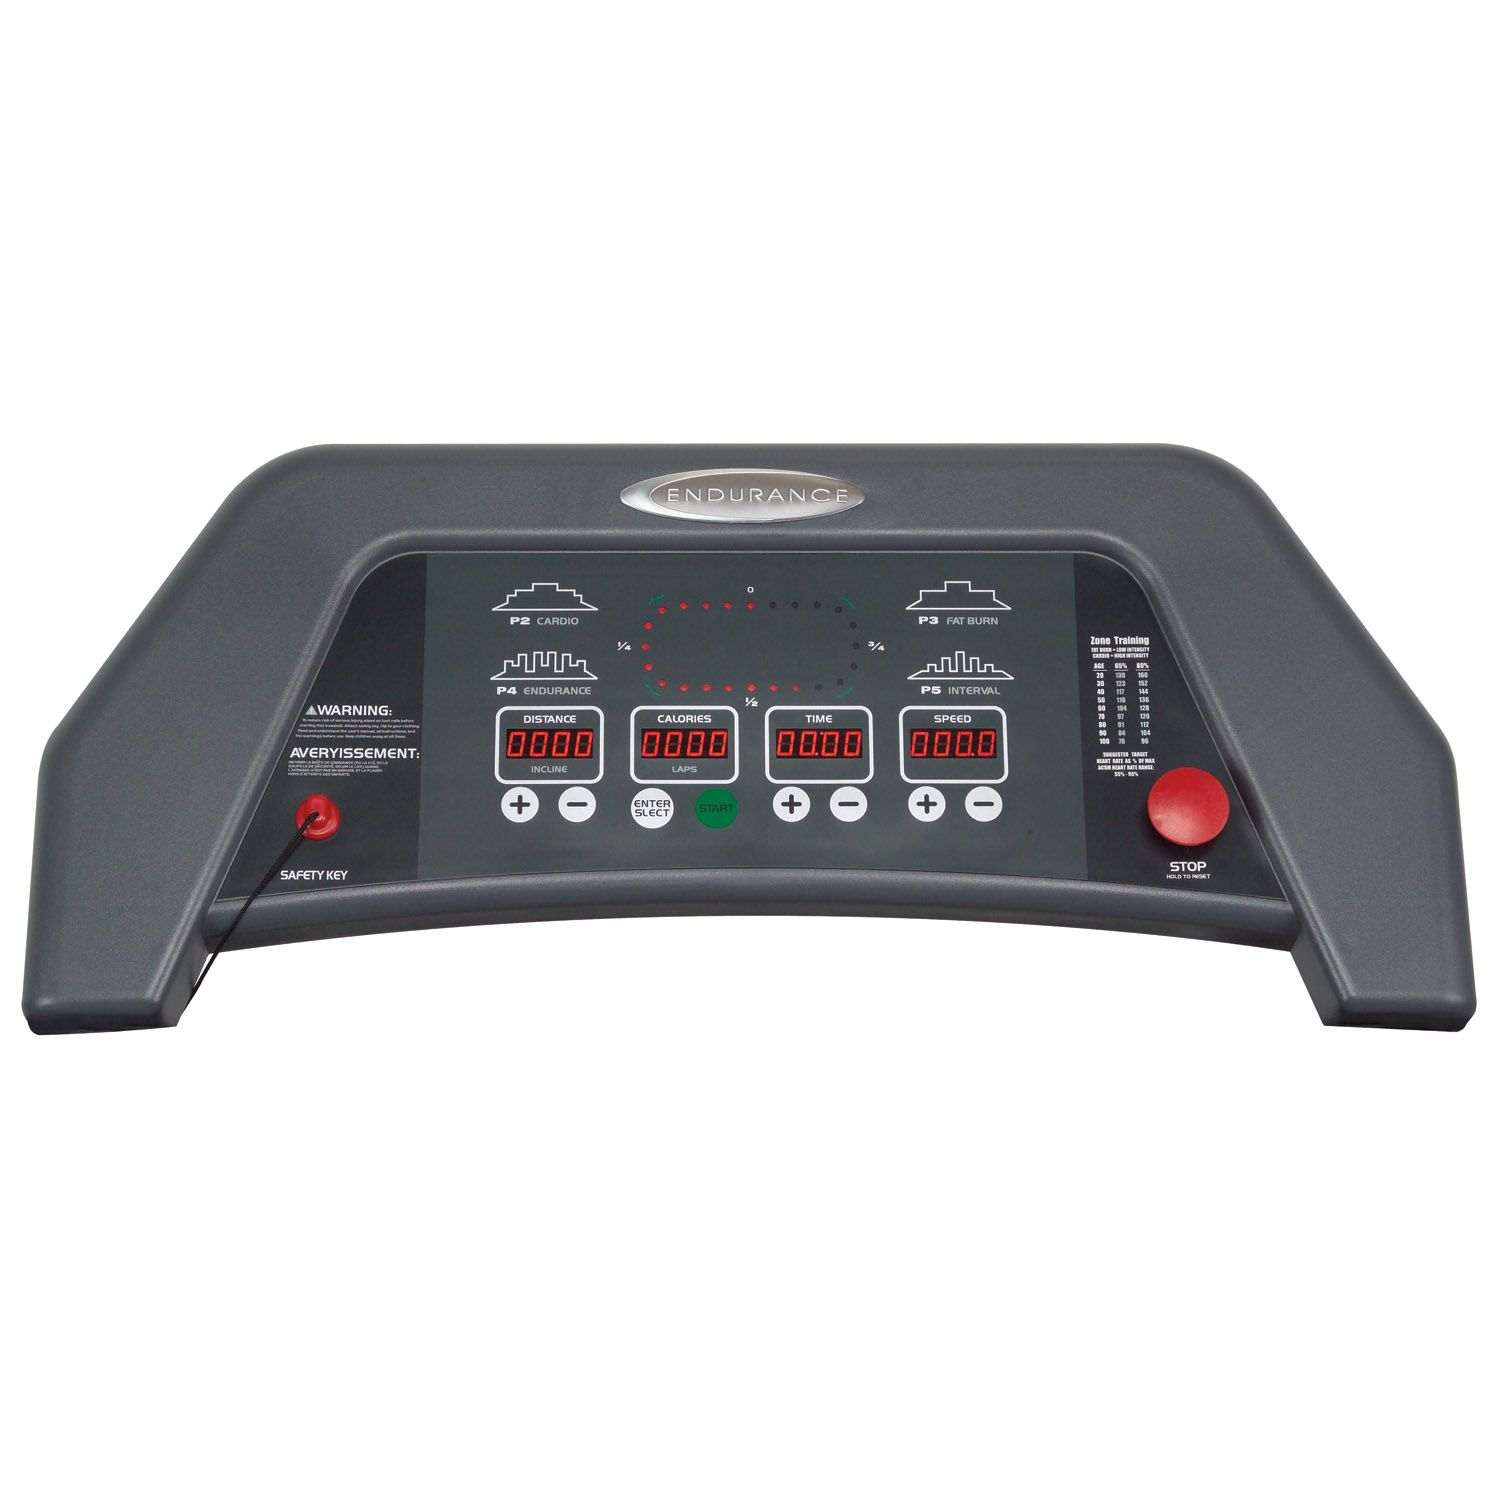 Endurance Cardio T3 Treadmill  - Includes Free Oversized Shipping!